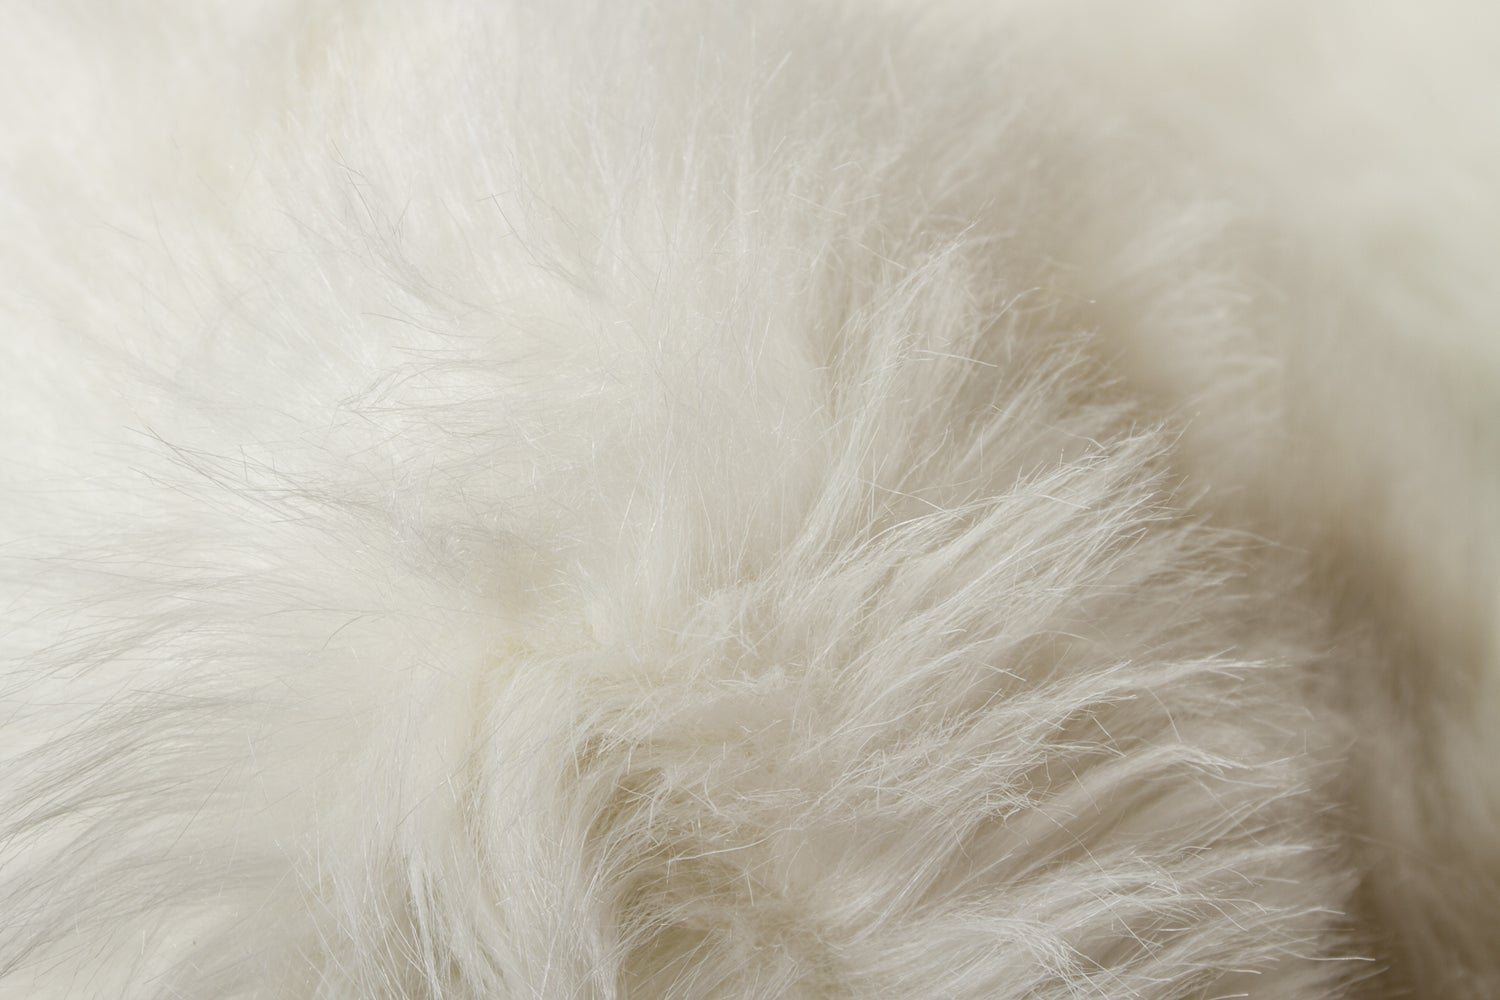 Image of 676685040992 GORDON FAUX SHEEPSKIN RUG SEXTO 5' X 6'  OFF WHITE